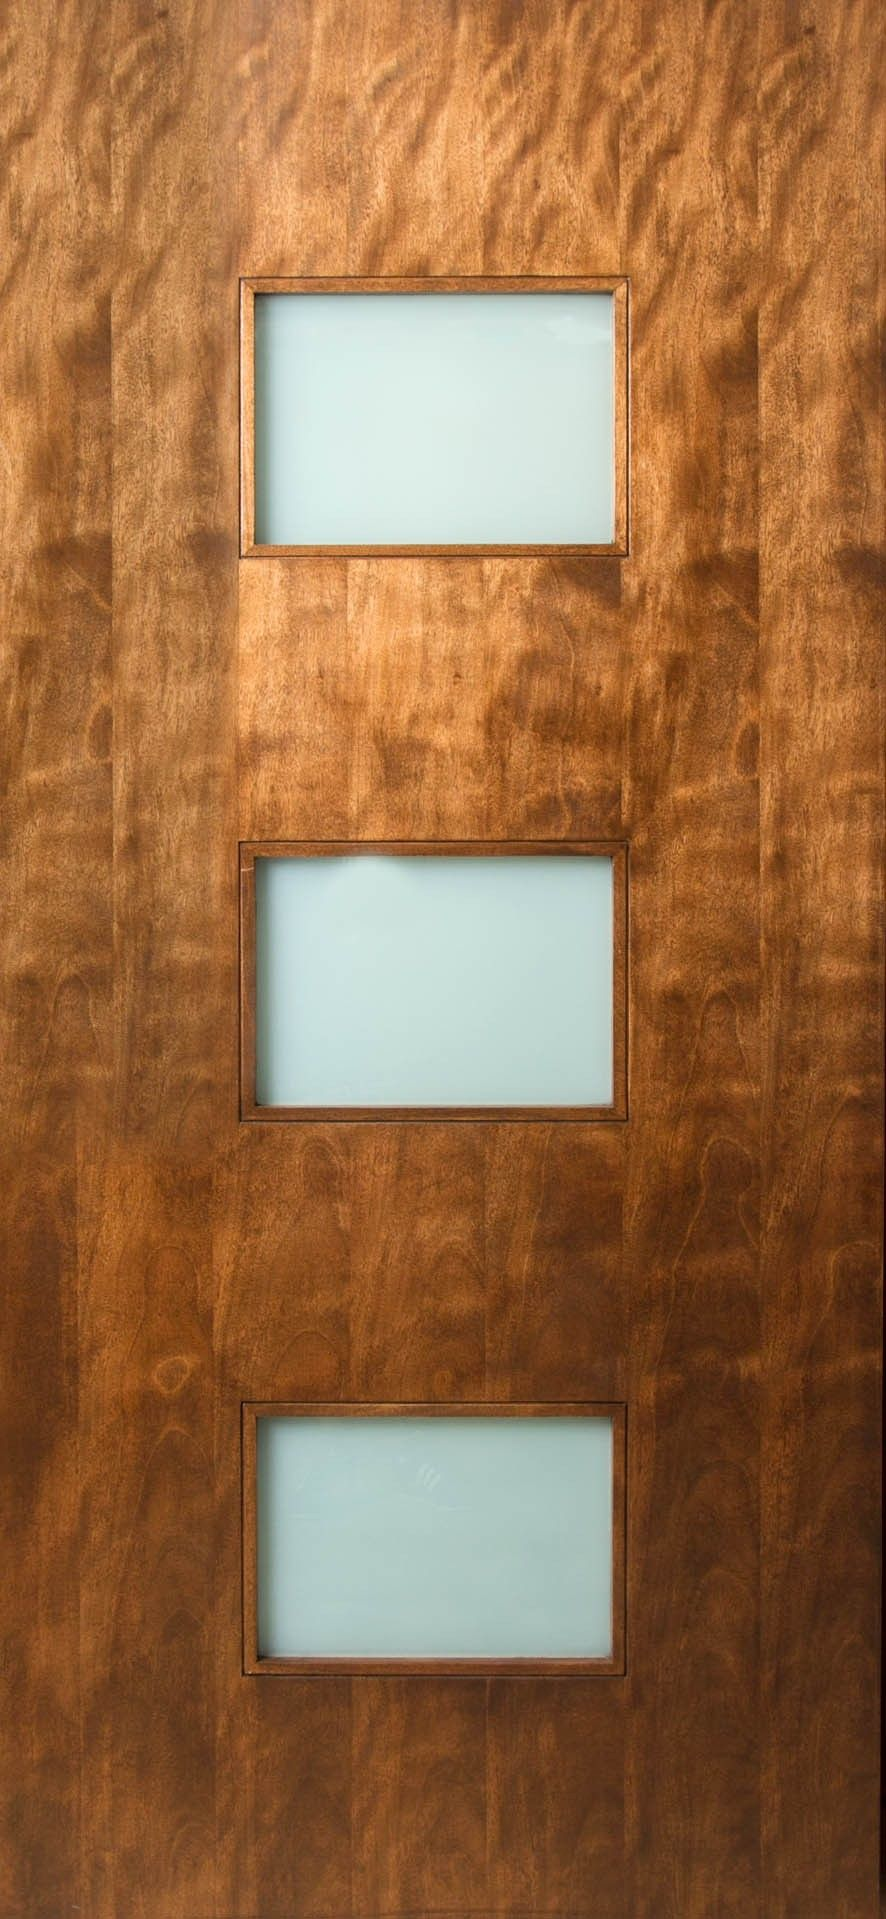 The 3 Rectangle Lite Door w/ Laminate Glass by Lux incorporates safety glass. Our & The 3 Rectangle Lite Door w/ Laminate Glass by Lux incorporates ... Pezcame.Com